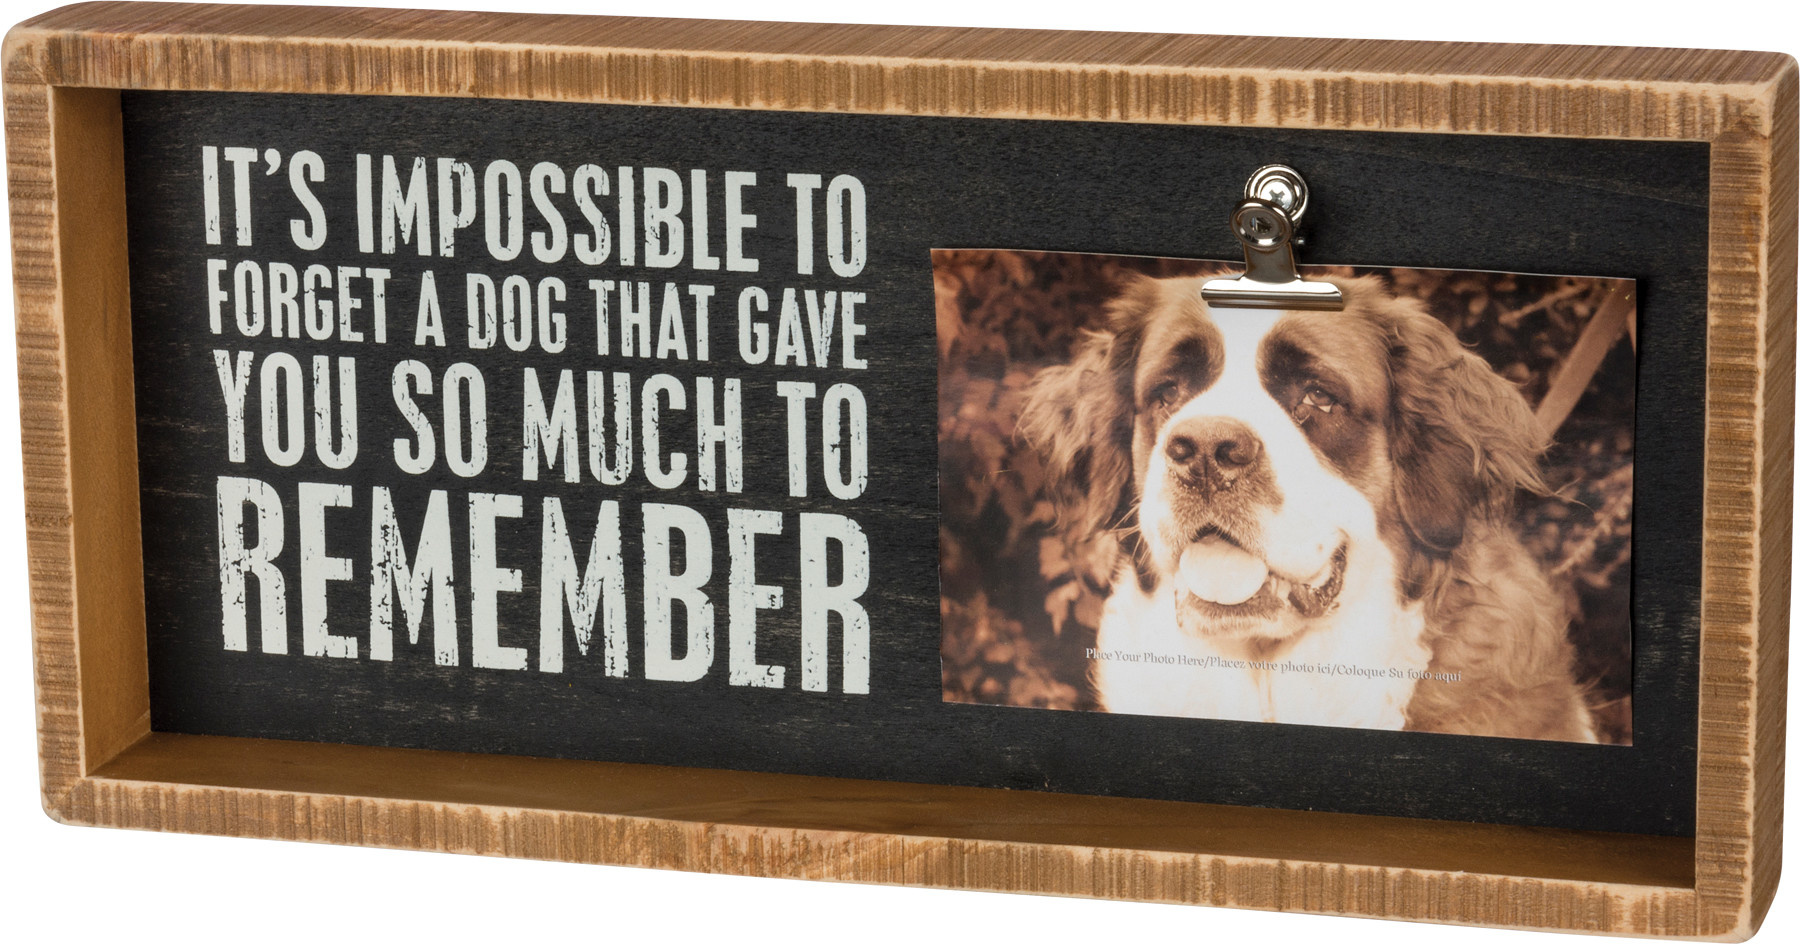 Box Frame (Insert) - DOG THAT GAVE YOU SO MUCH